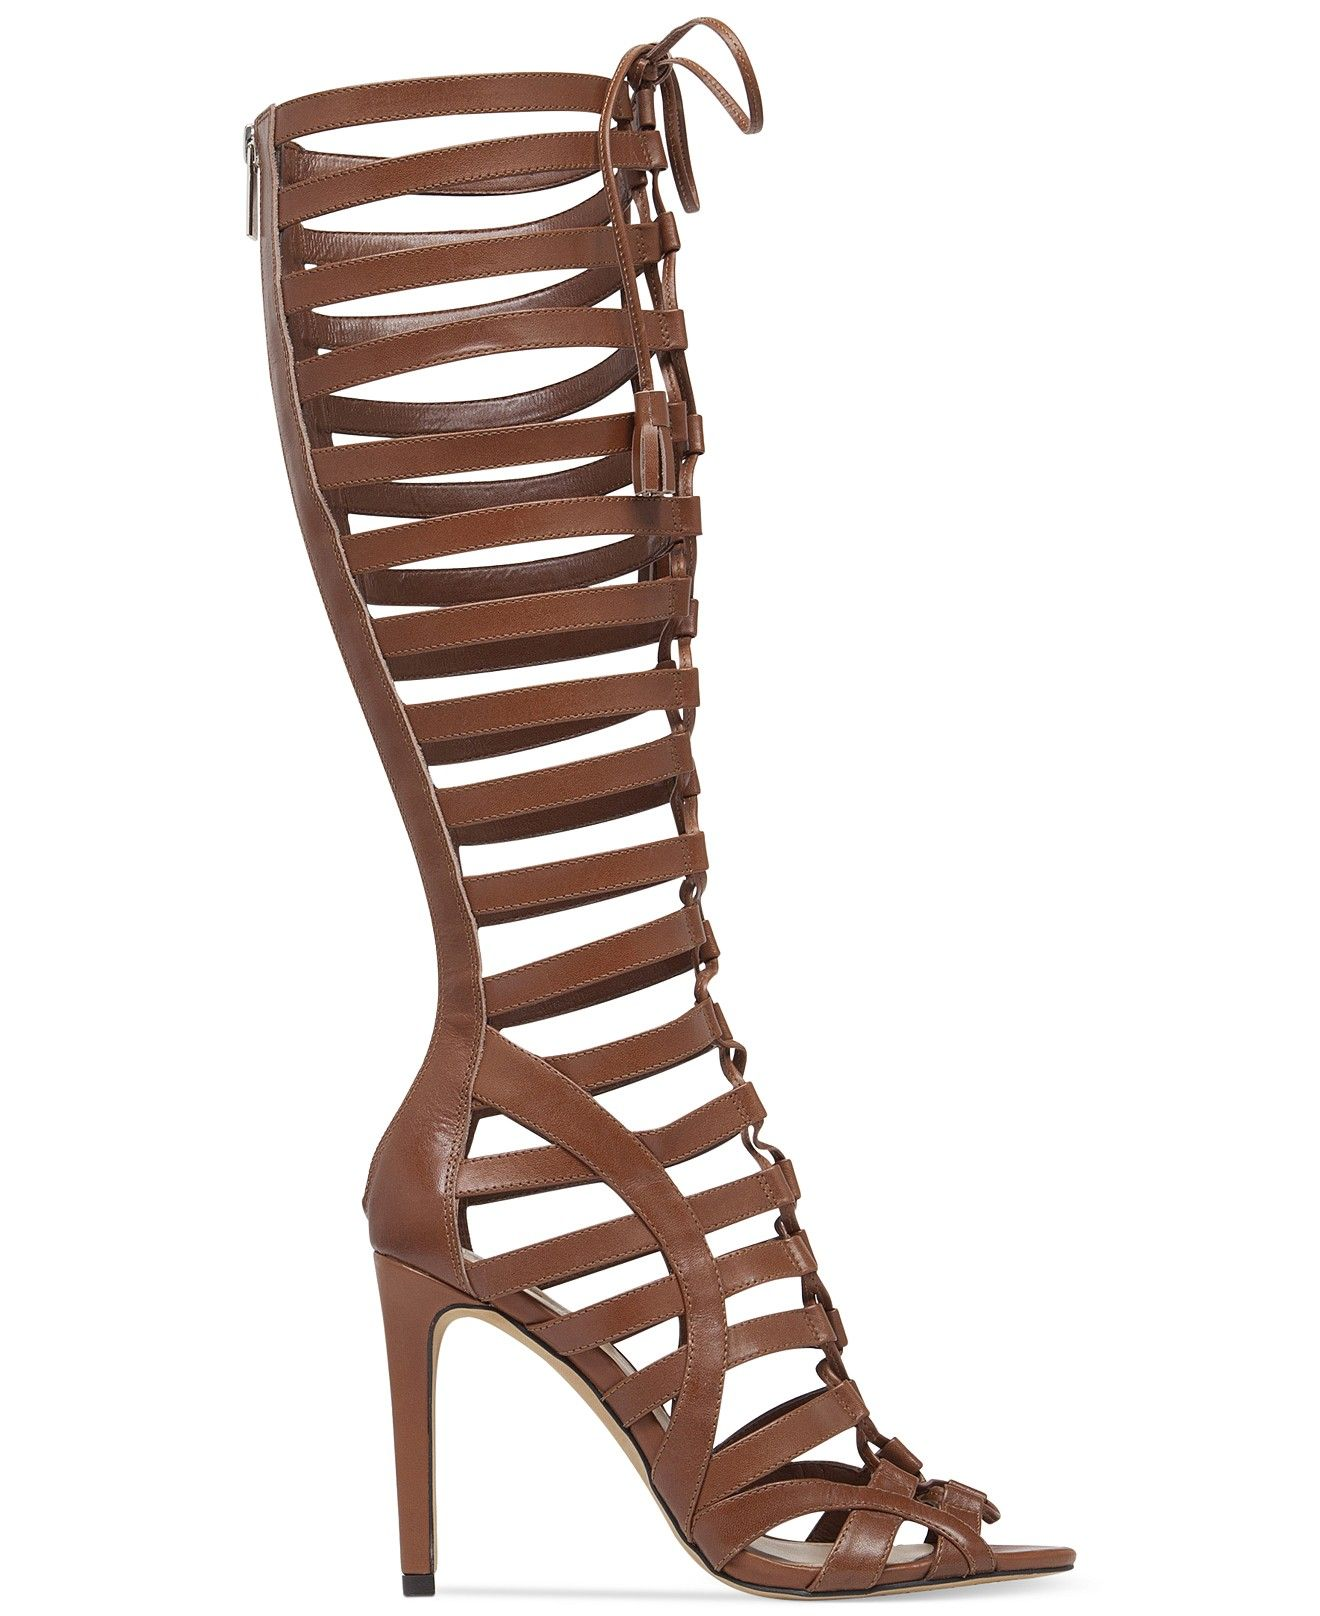 742e309af077 Vince Camuto Olivian Tall Lace-Up Gladiator Sandals - Shoes - Macy s ...